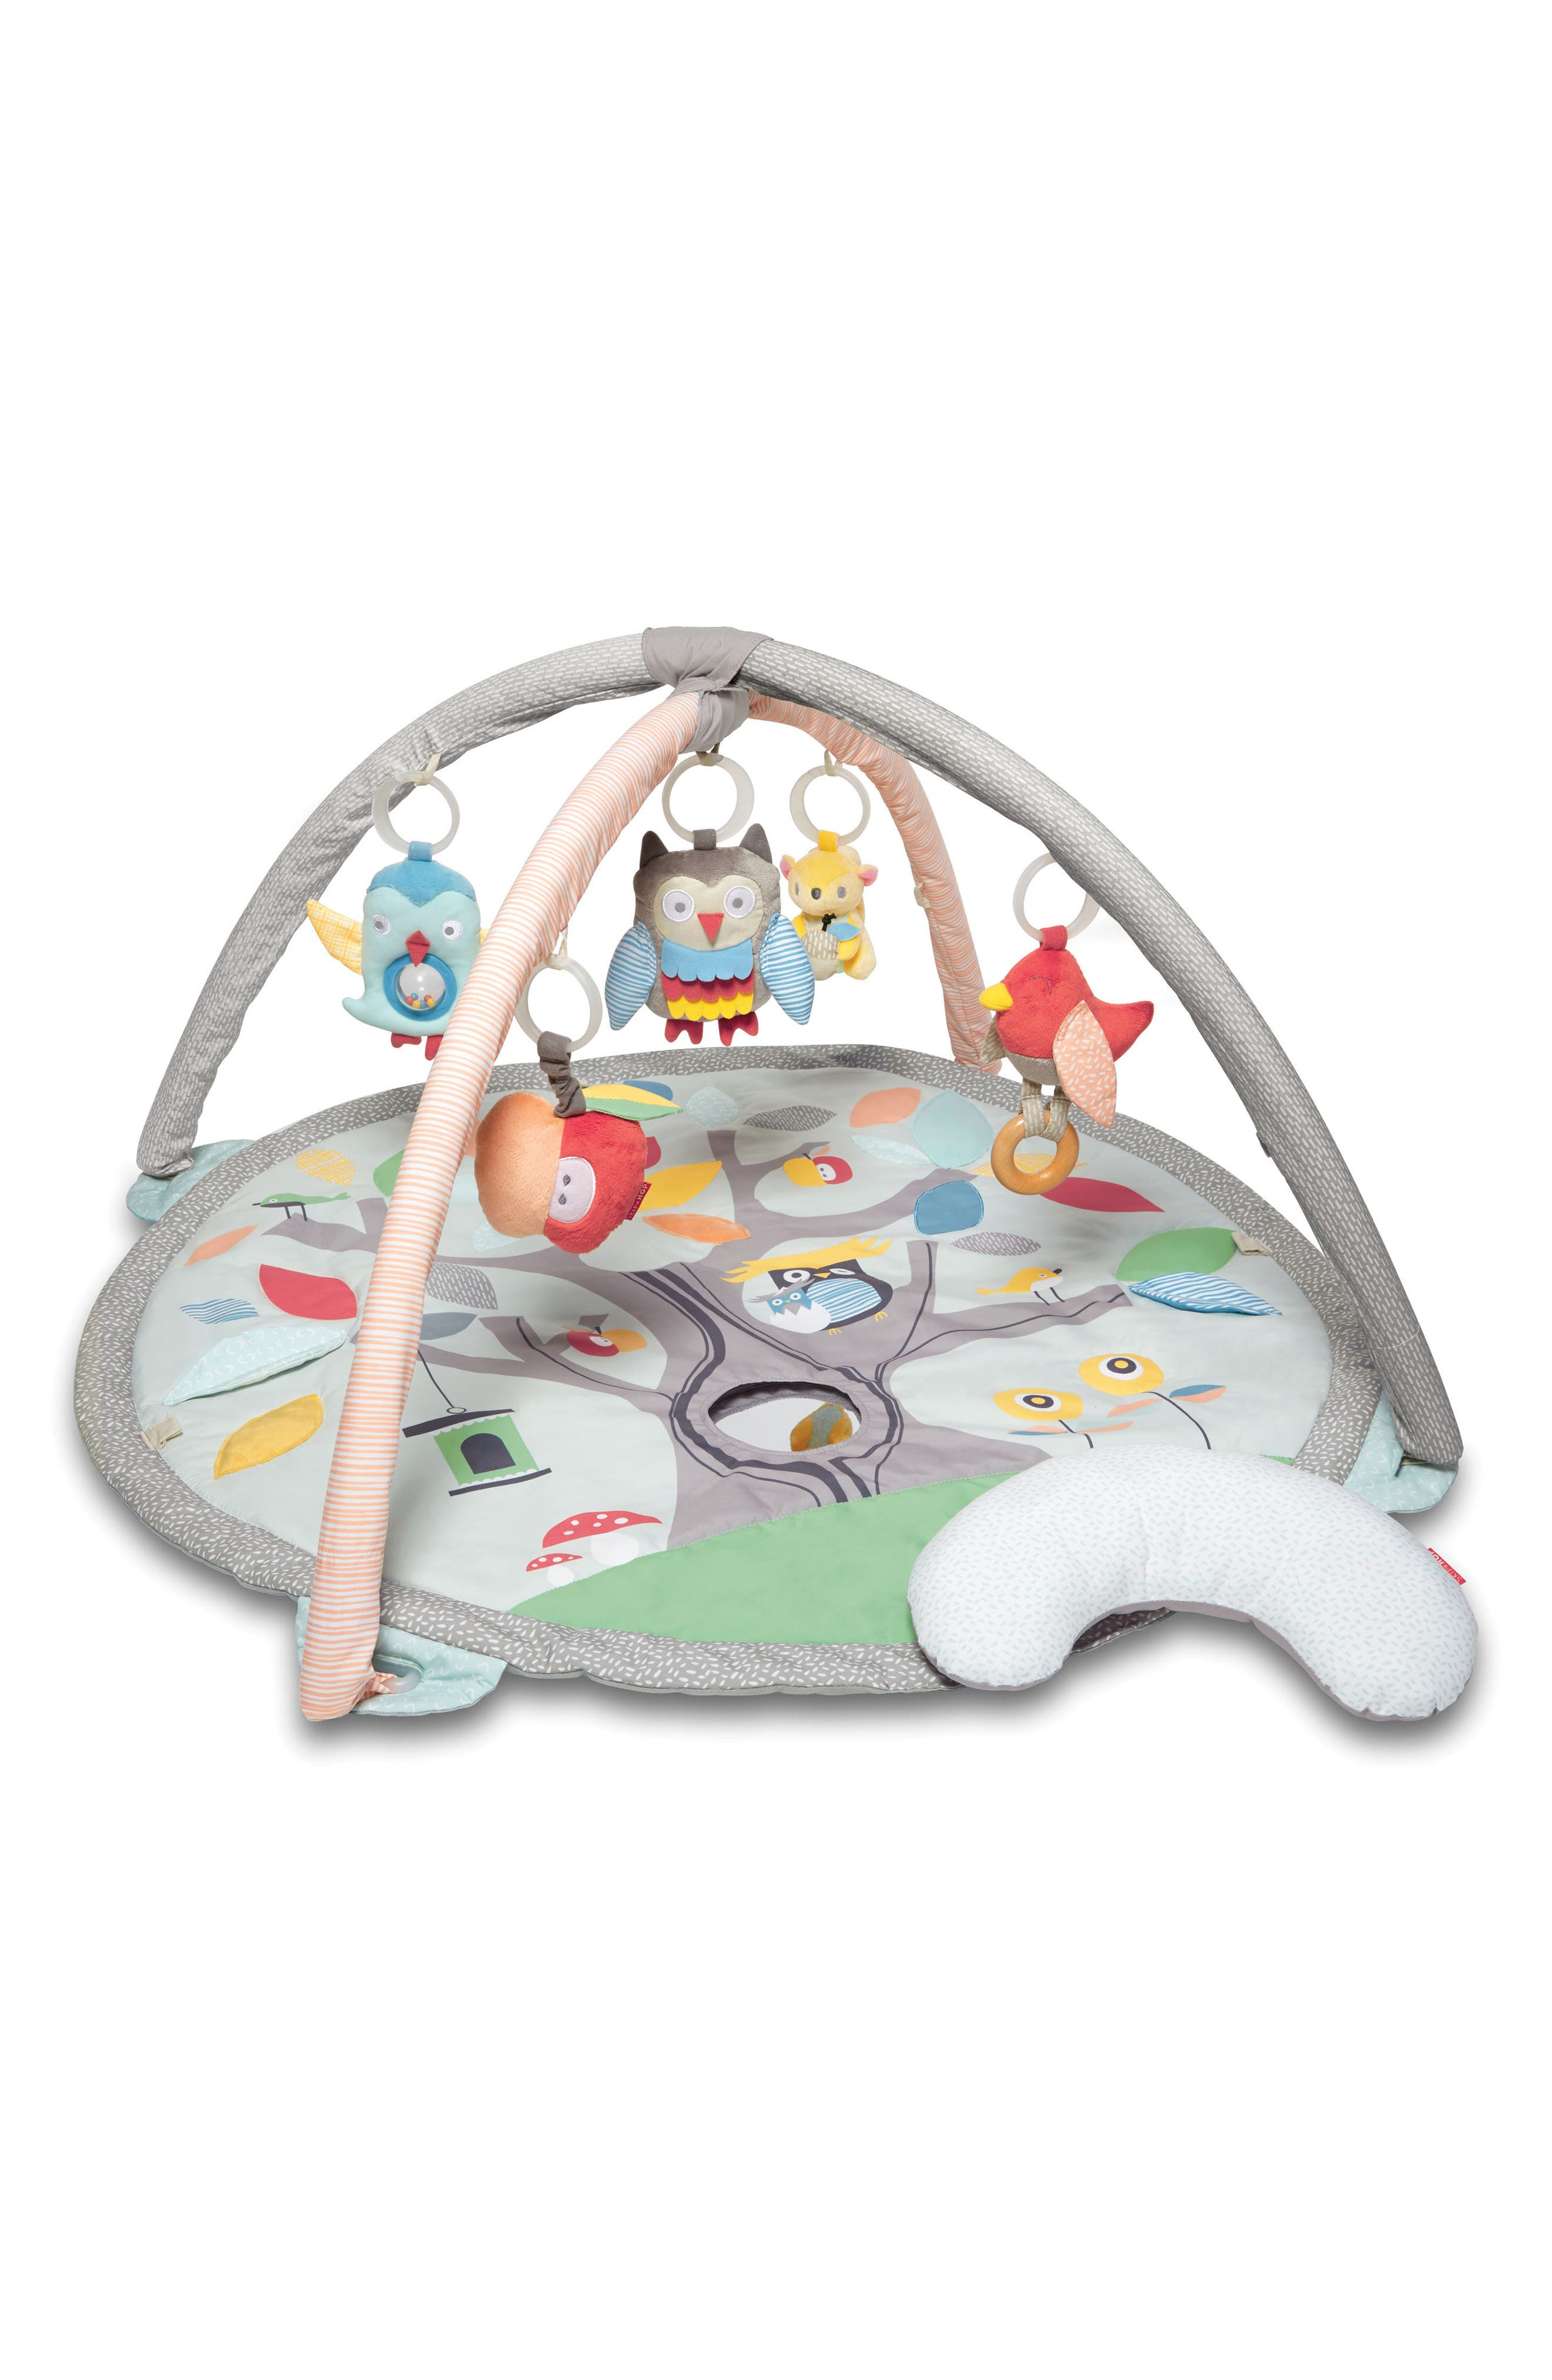 Alternate Image 1 Selected - Skip Hop 'Treetop Friends' Activity Gym